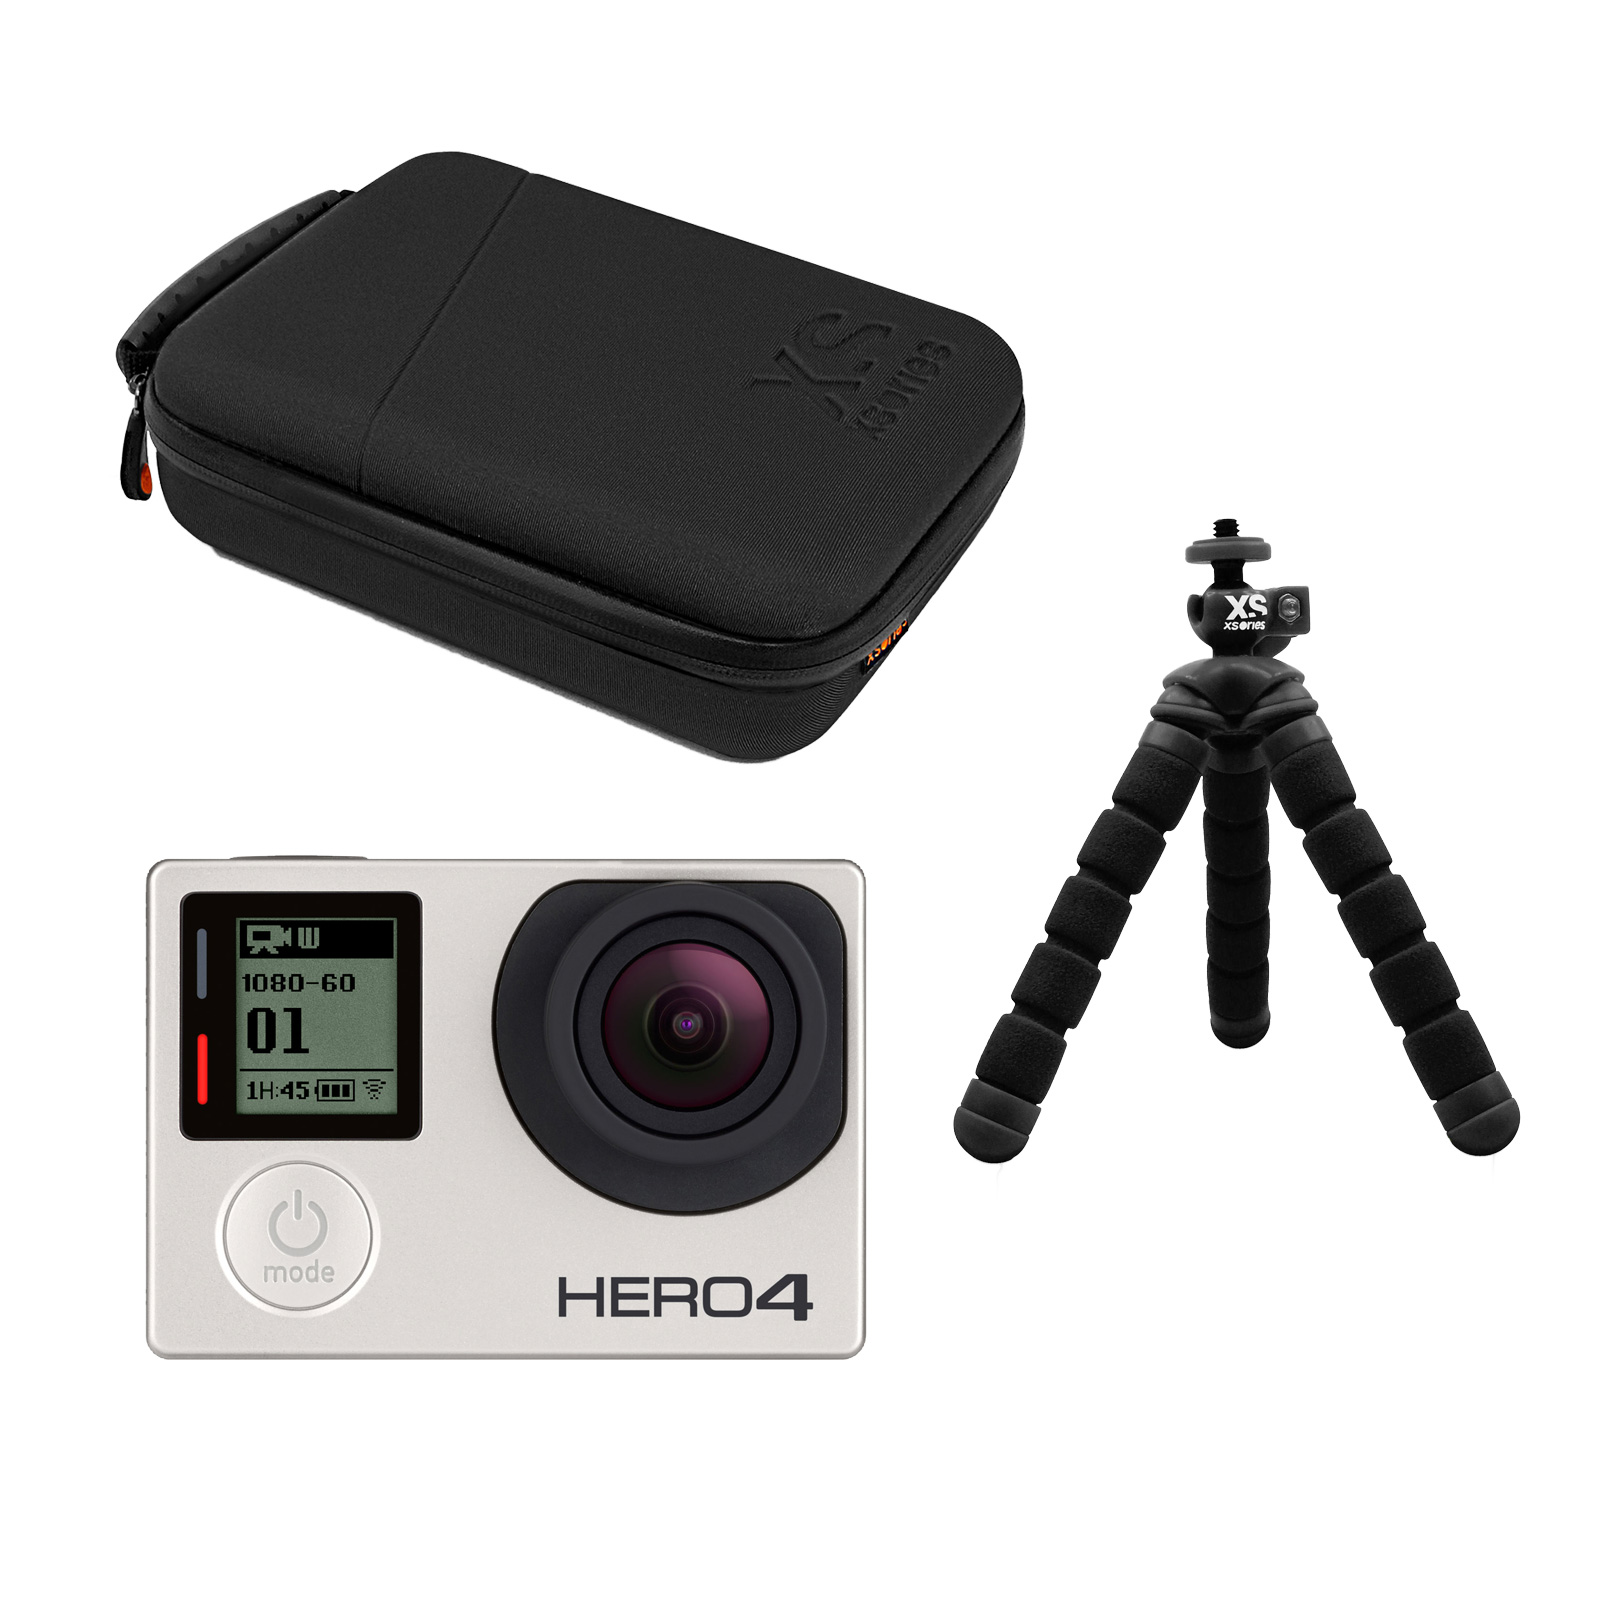 gopro hero 4 silver edition xsories capxule small case. Black Bedroom Furniture Sets. Home Design Ideas